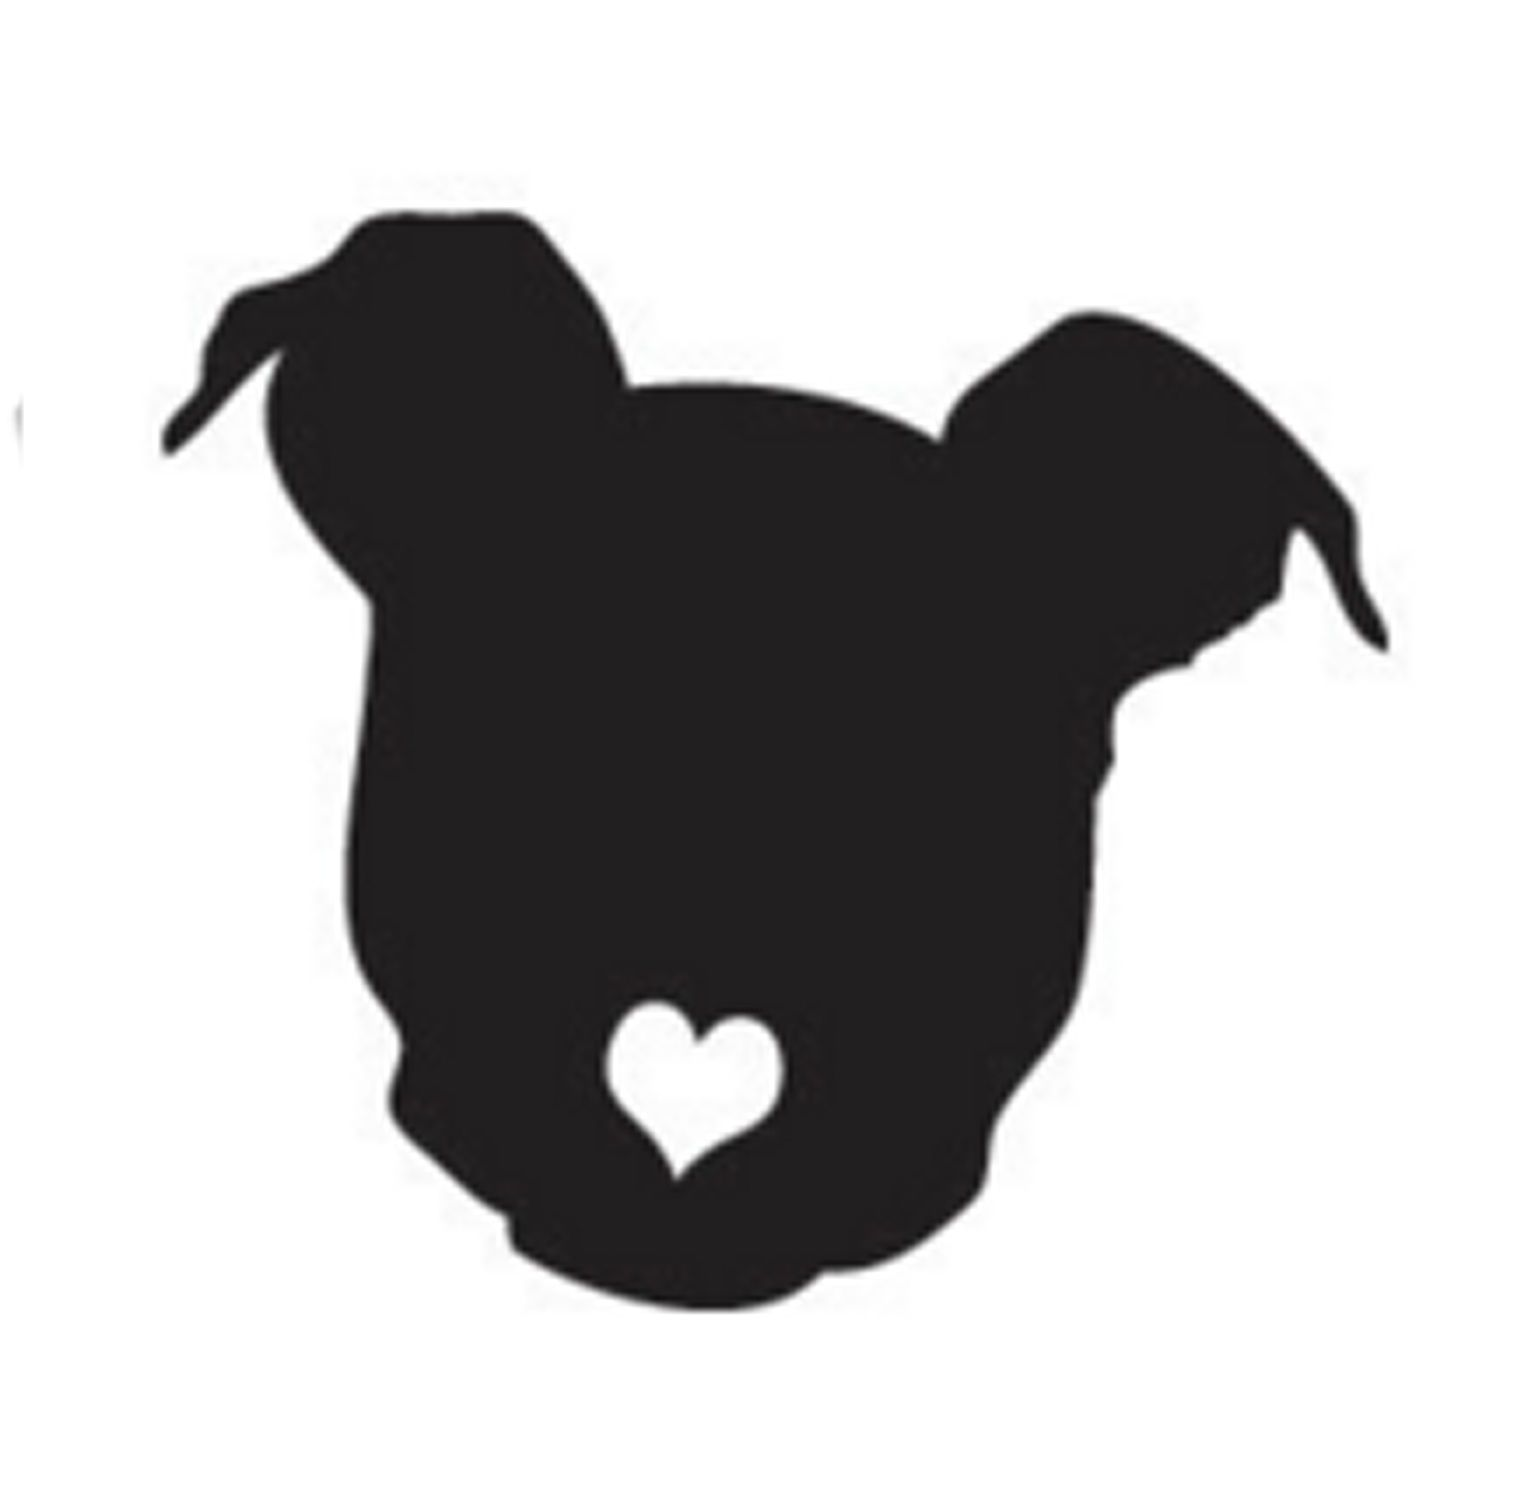 1521x1500 Pitbull With Heart Cutout Nose Or Angel Pit Bull Decal Sticker